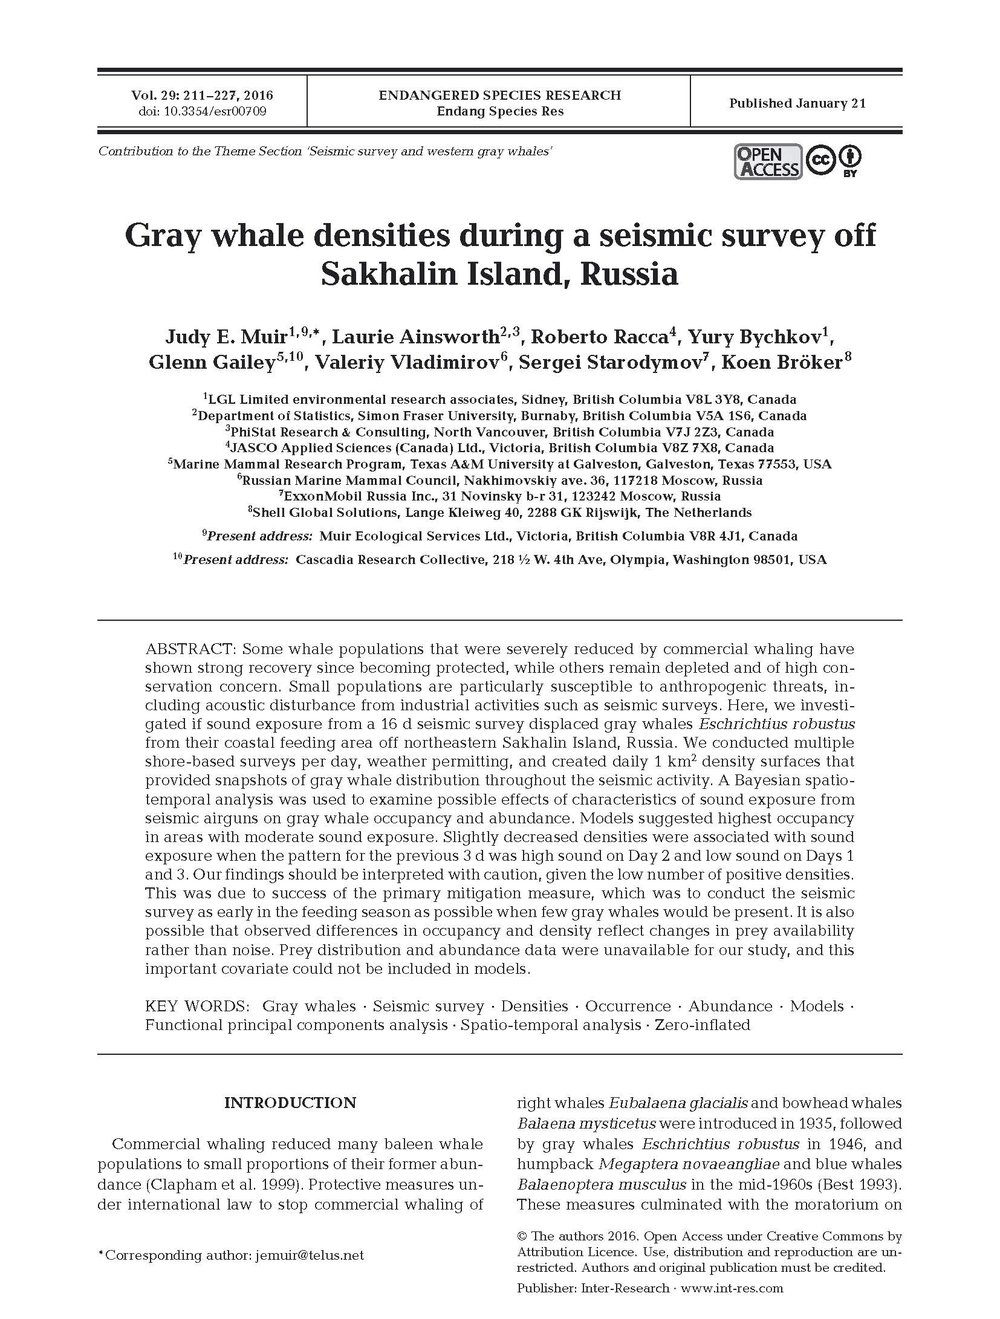 Gray whale densities during a seismic survey off Sakhalin Island, Russia - Muir, J.E., L. Ainsworth, R. Racca, Y. Bychkov, G. Gailey, V. Vladimirov, S. Starodymov, and K. BrökerEndang. Species Res. 29: 211-227 (2016)doi.org/10.3354/esr00709